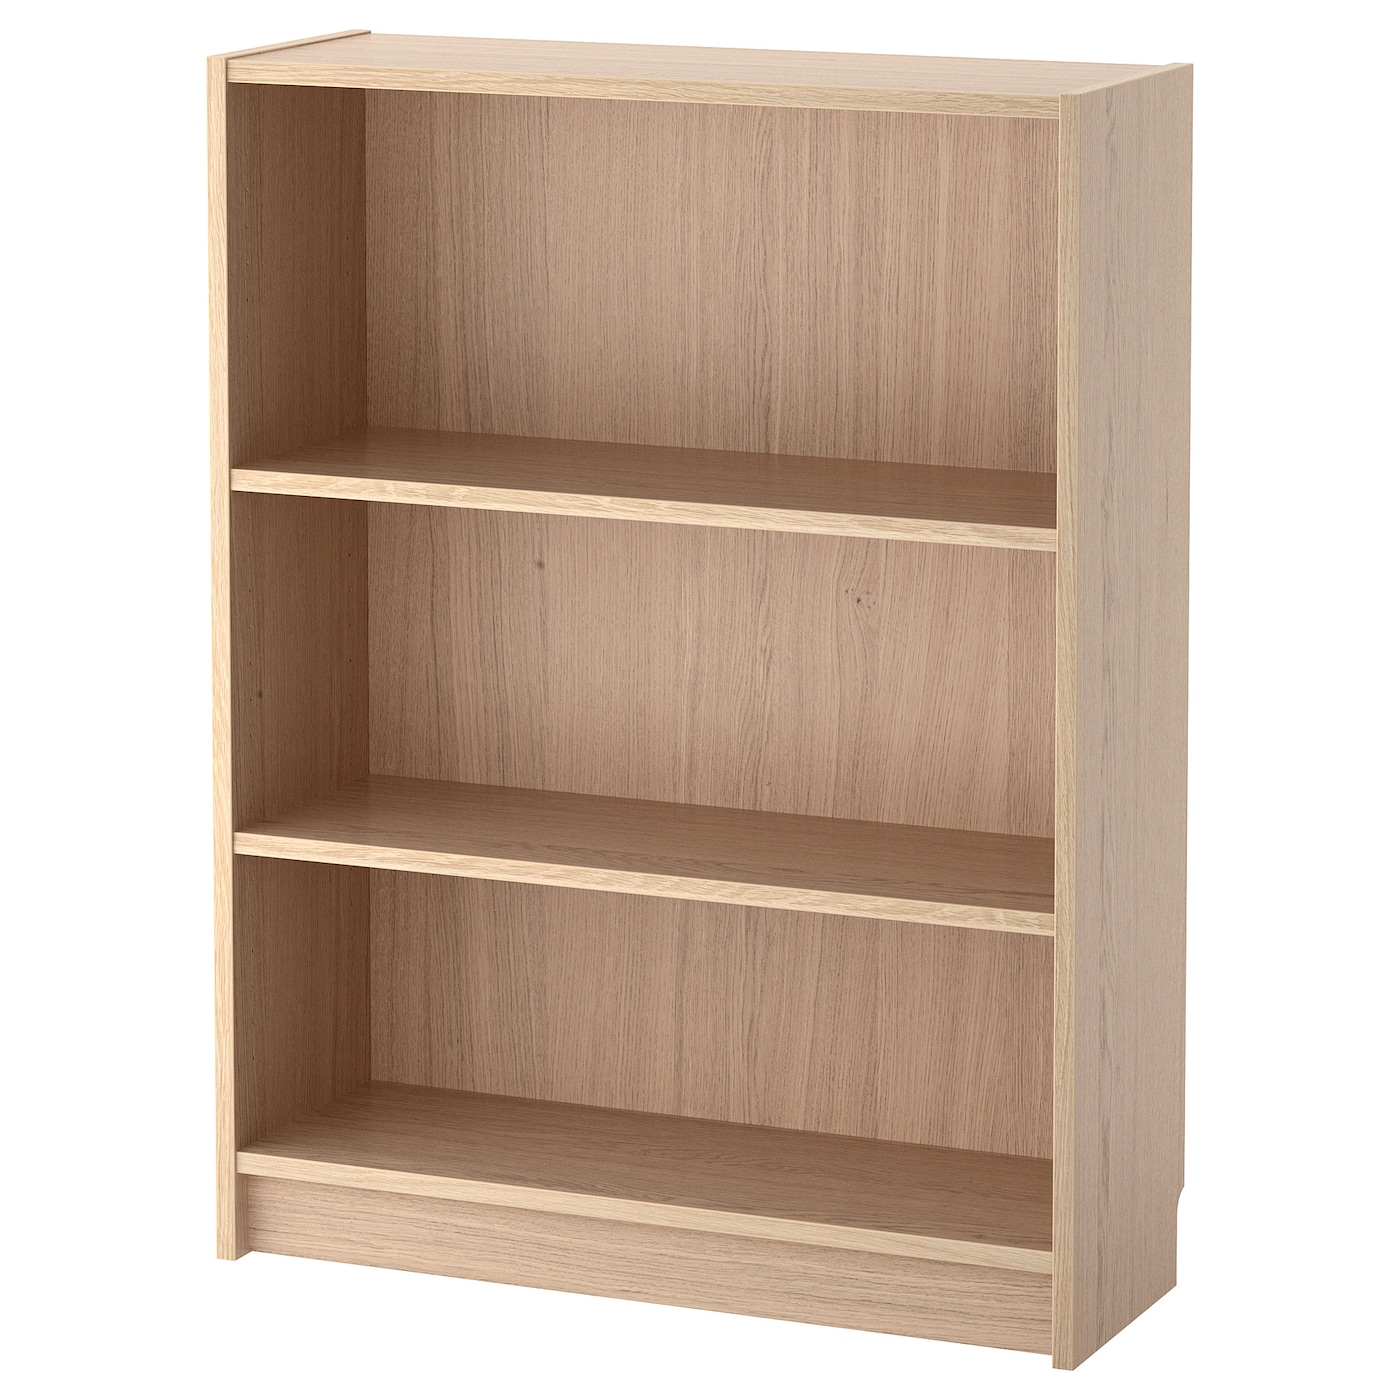 long pinterest plywood diza bookcase pin low